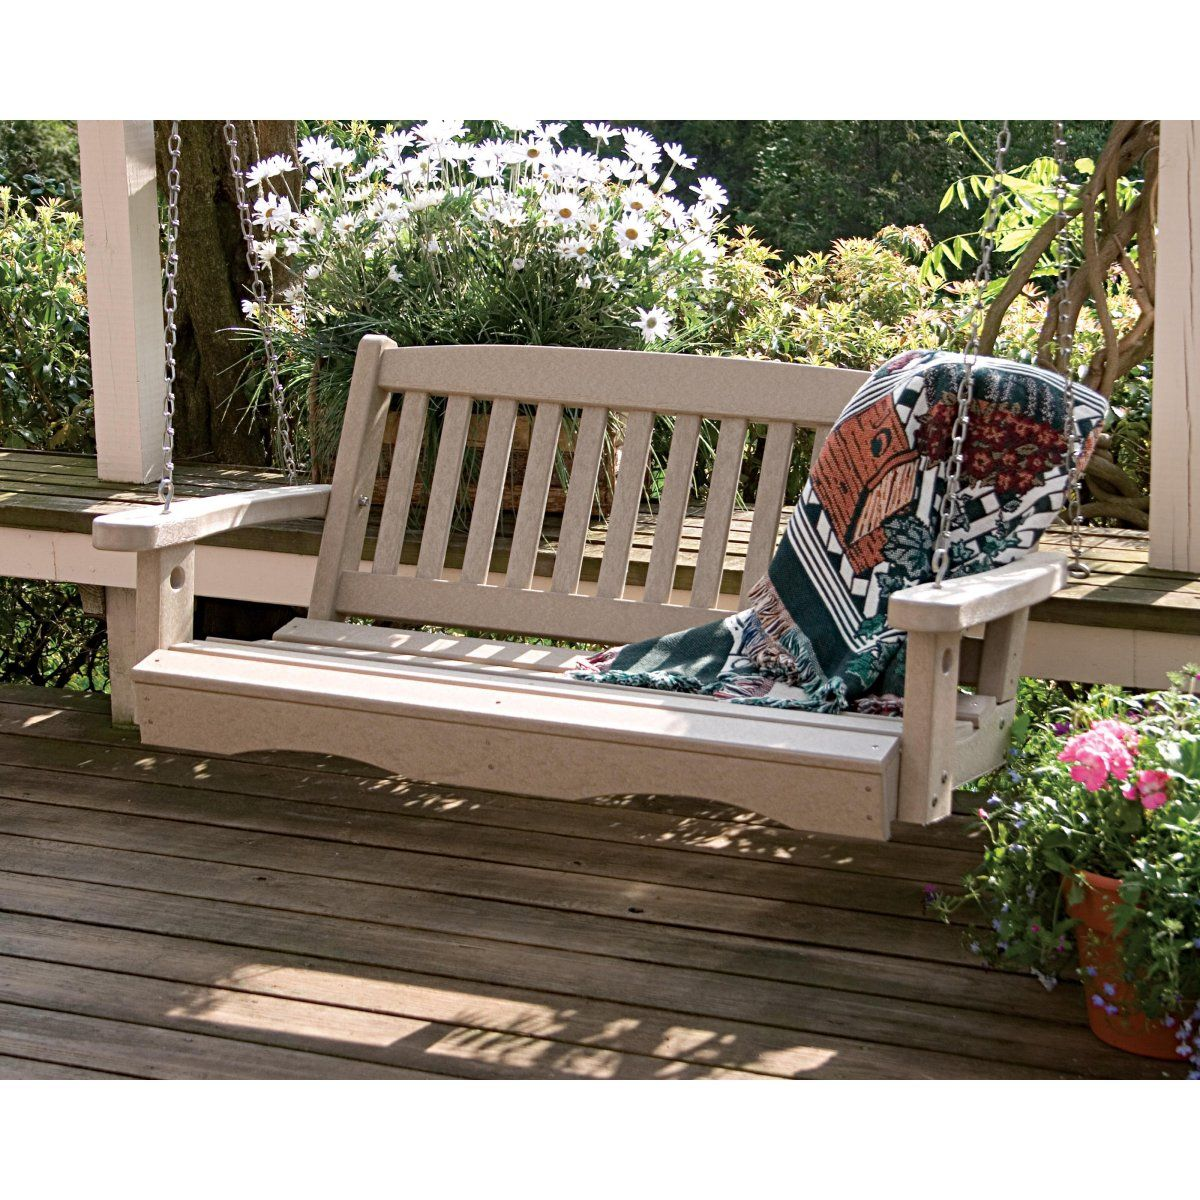 Great American Woodies 4 ft Lifestyle Recycled Plastic